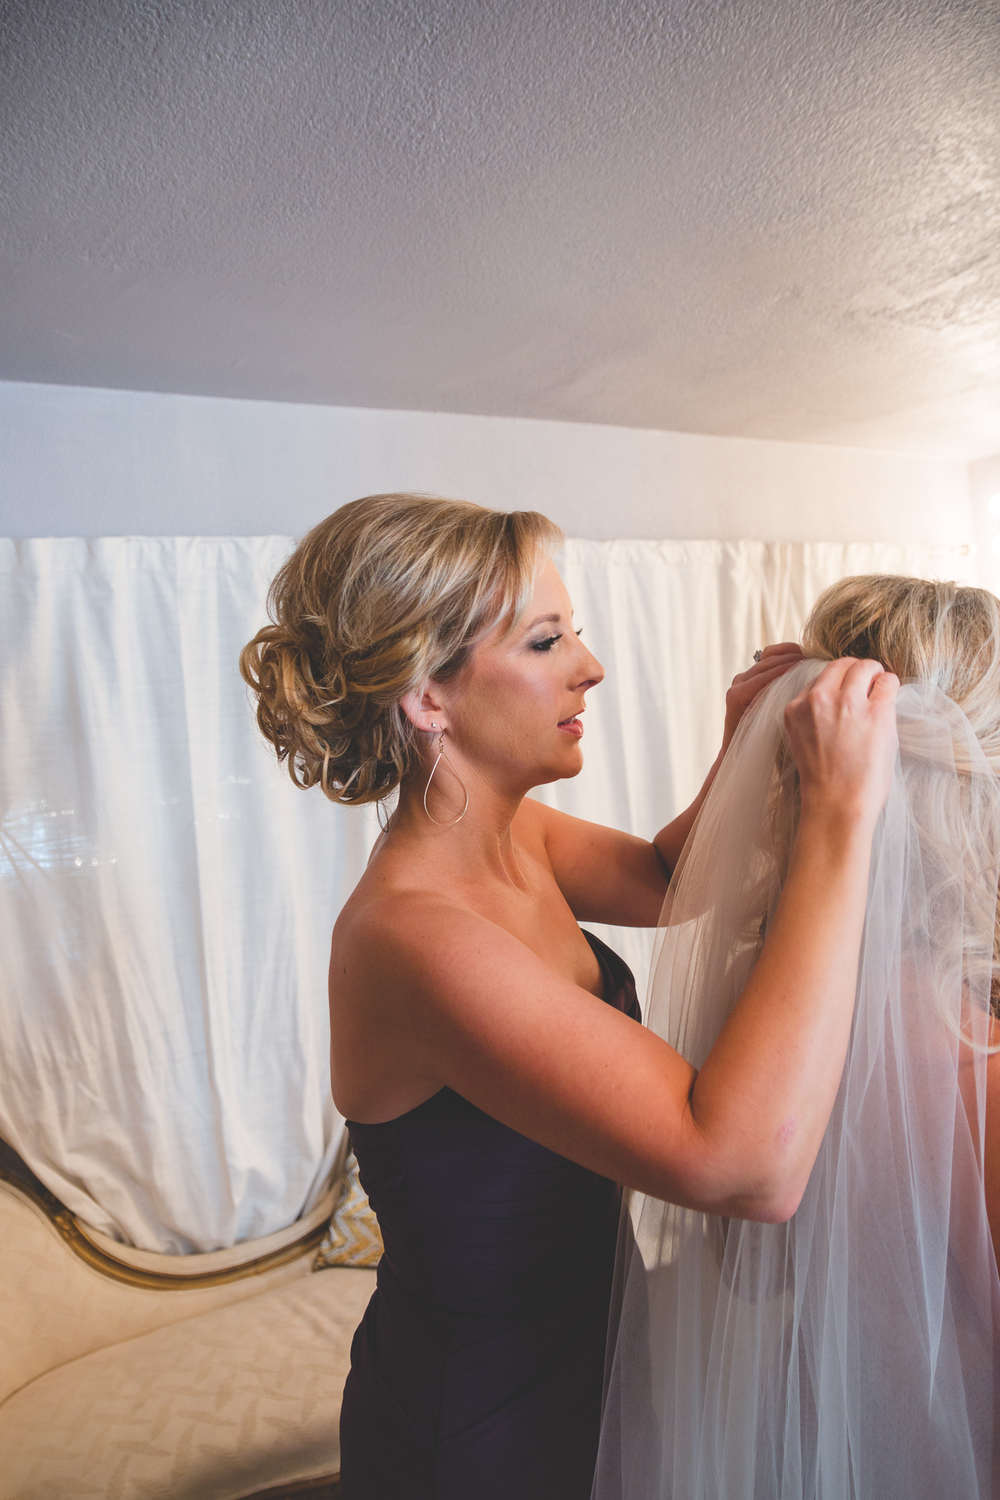 sister putting on veil